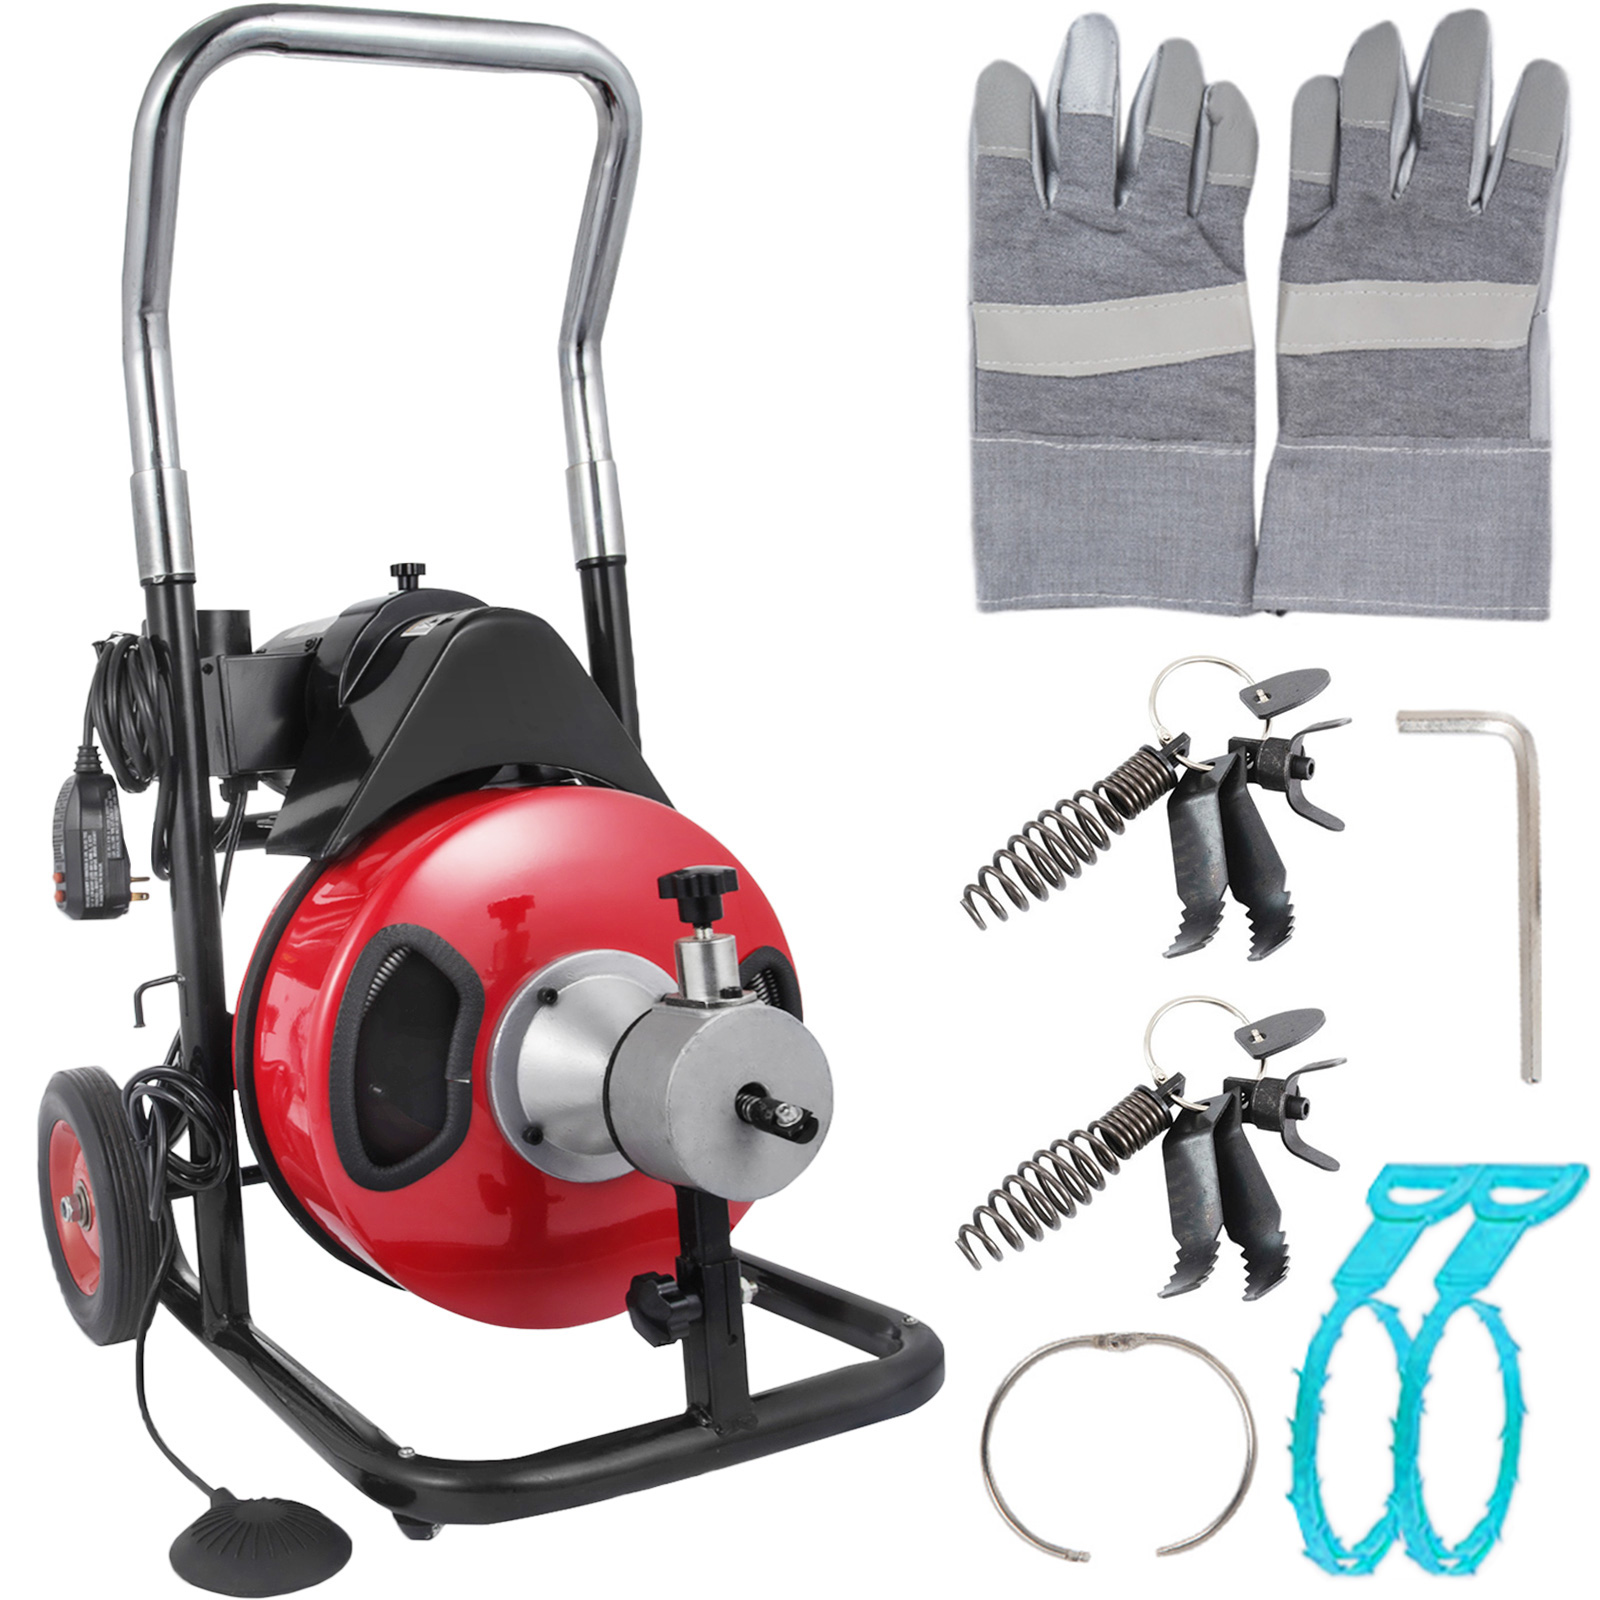 26ftx8mm 700W Portable Electric Drain Auger Plumbing Cleaner Cleaning Machine